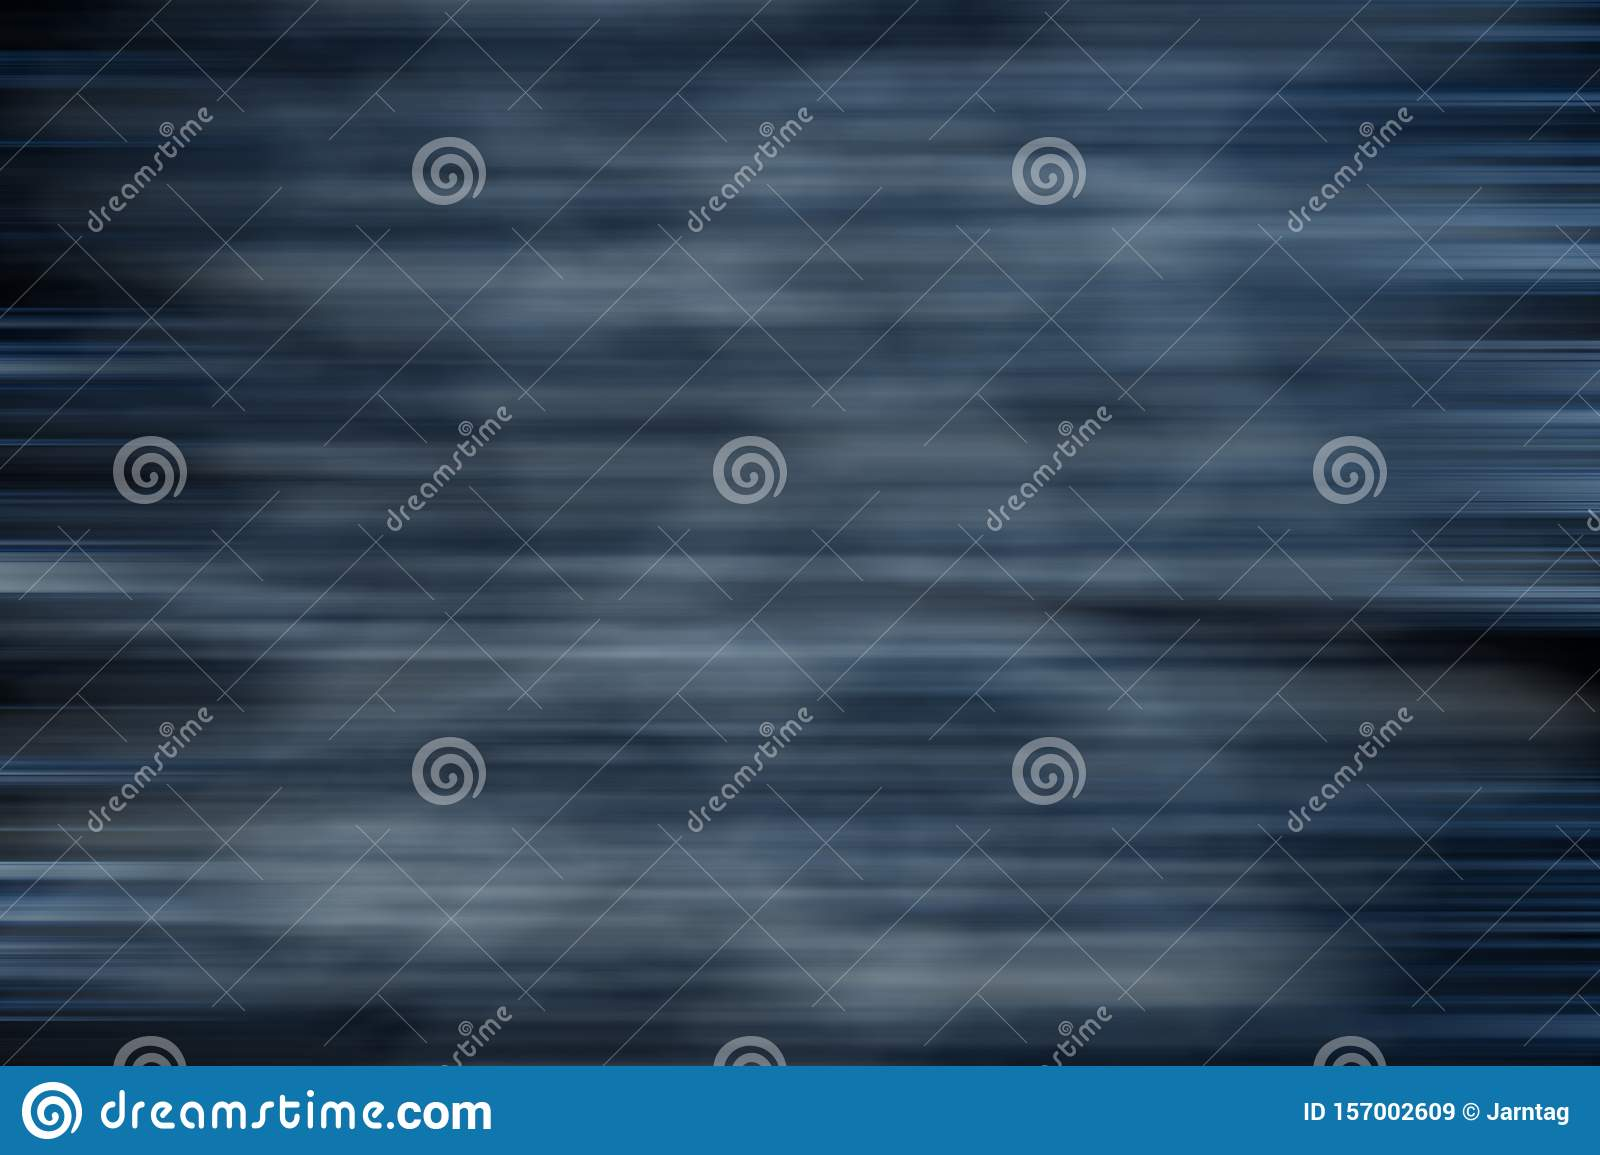 Blue colors mesh background. Colorful. Smooth blend banner template. Easy editable soft colored